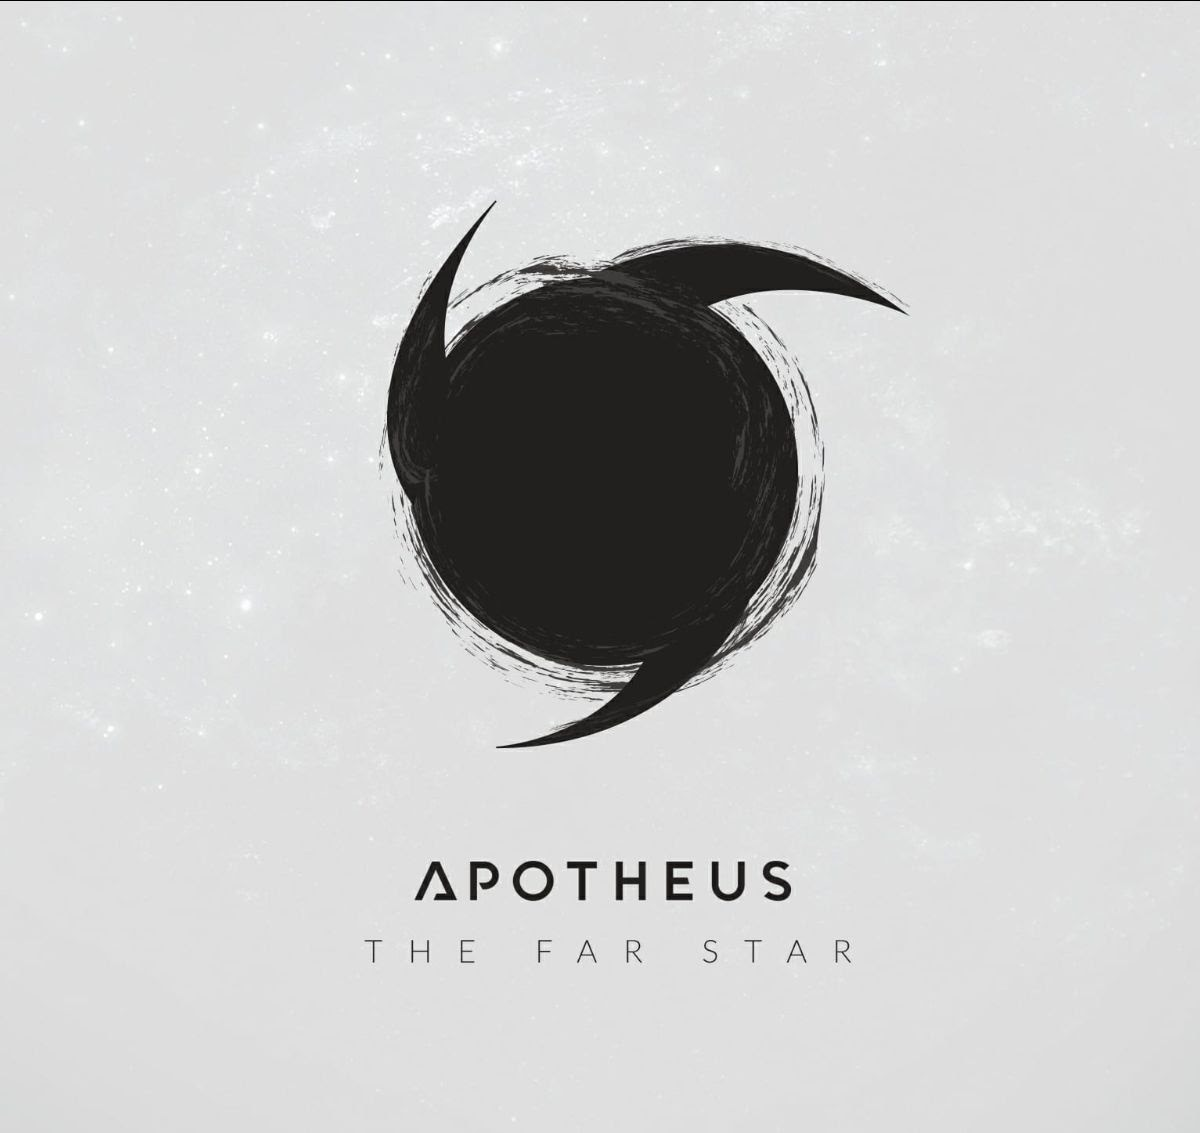 Apotheus - artwork